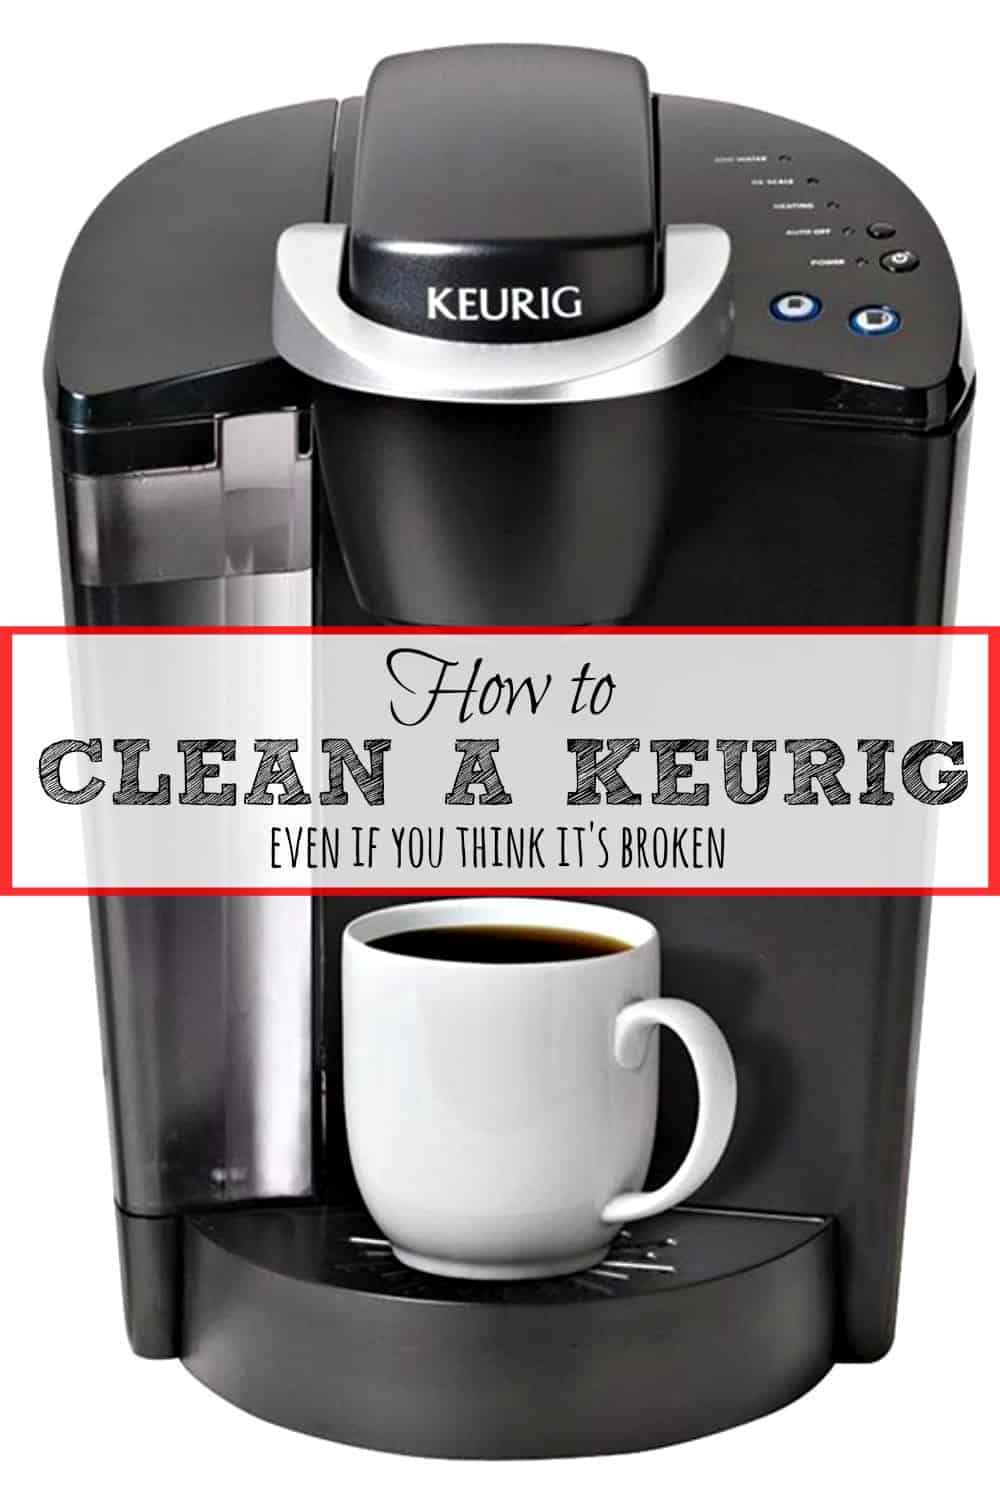 Keurig Coffee Maker Says Descale : How To Clean A Keurig (even if you think it s broken) Housewife How-To s